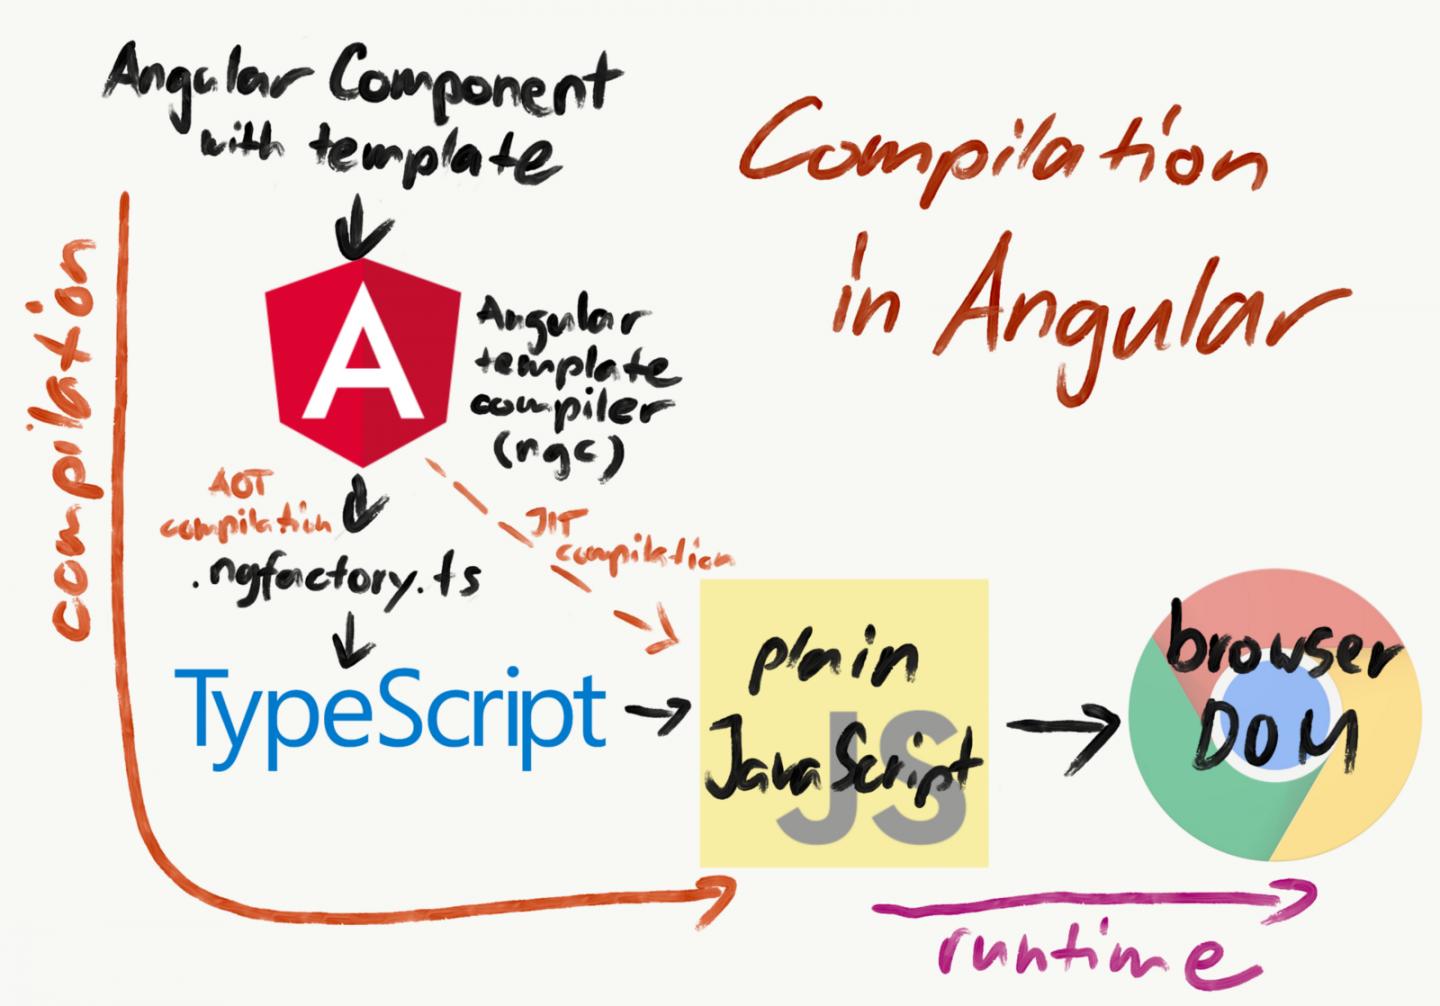 Getting Acquainted with Angular